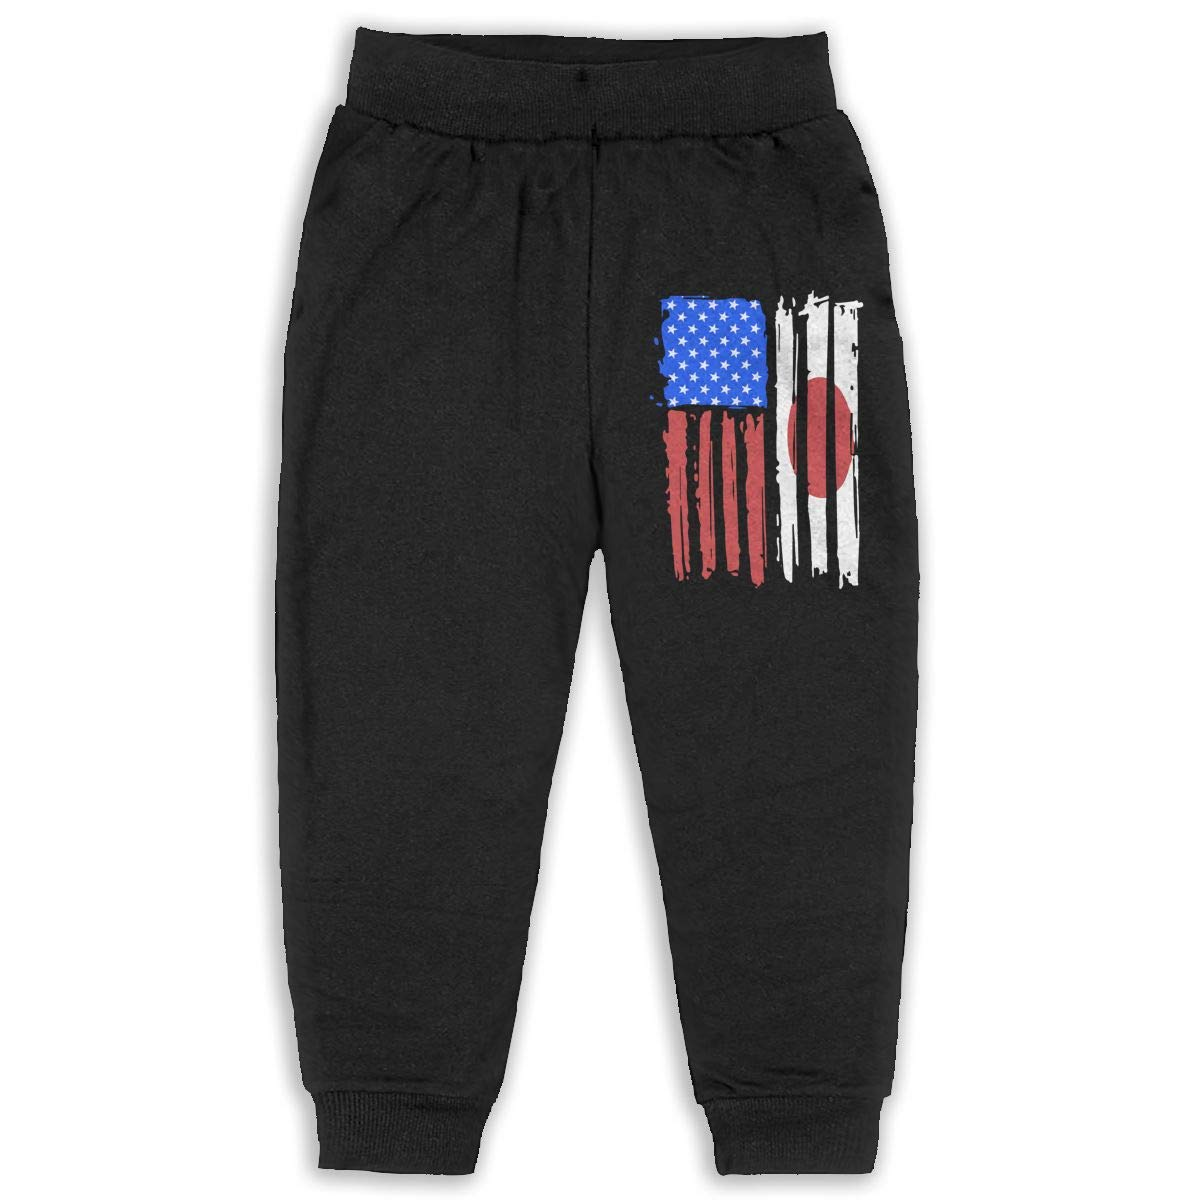 ELCW37K Kids /& Toddler Pants Soft Cozy Baby Sweatpants Peru Flag Fleece Pants Training Pants